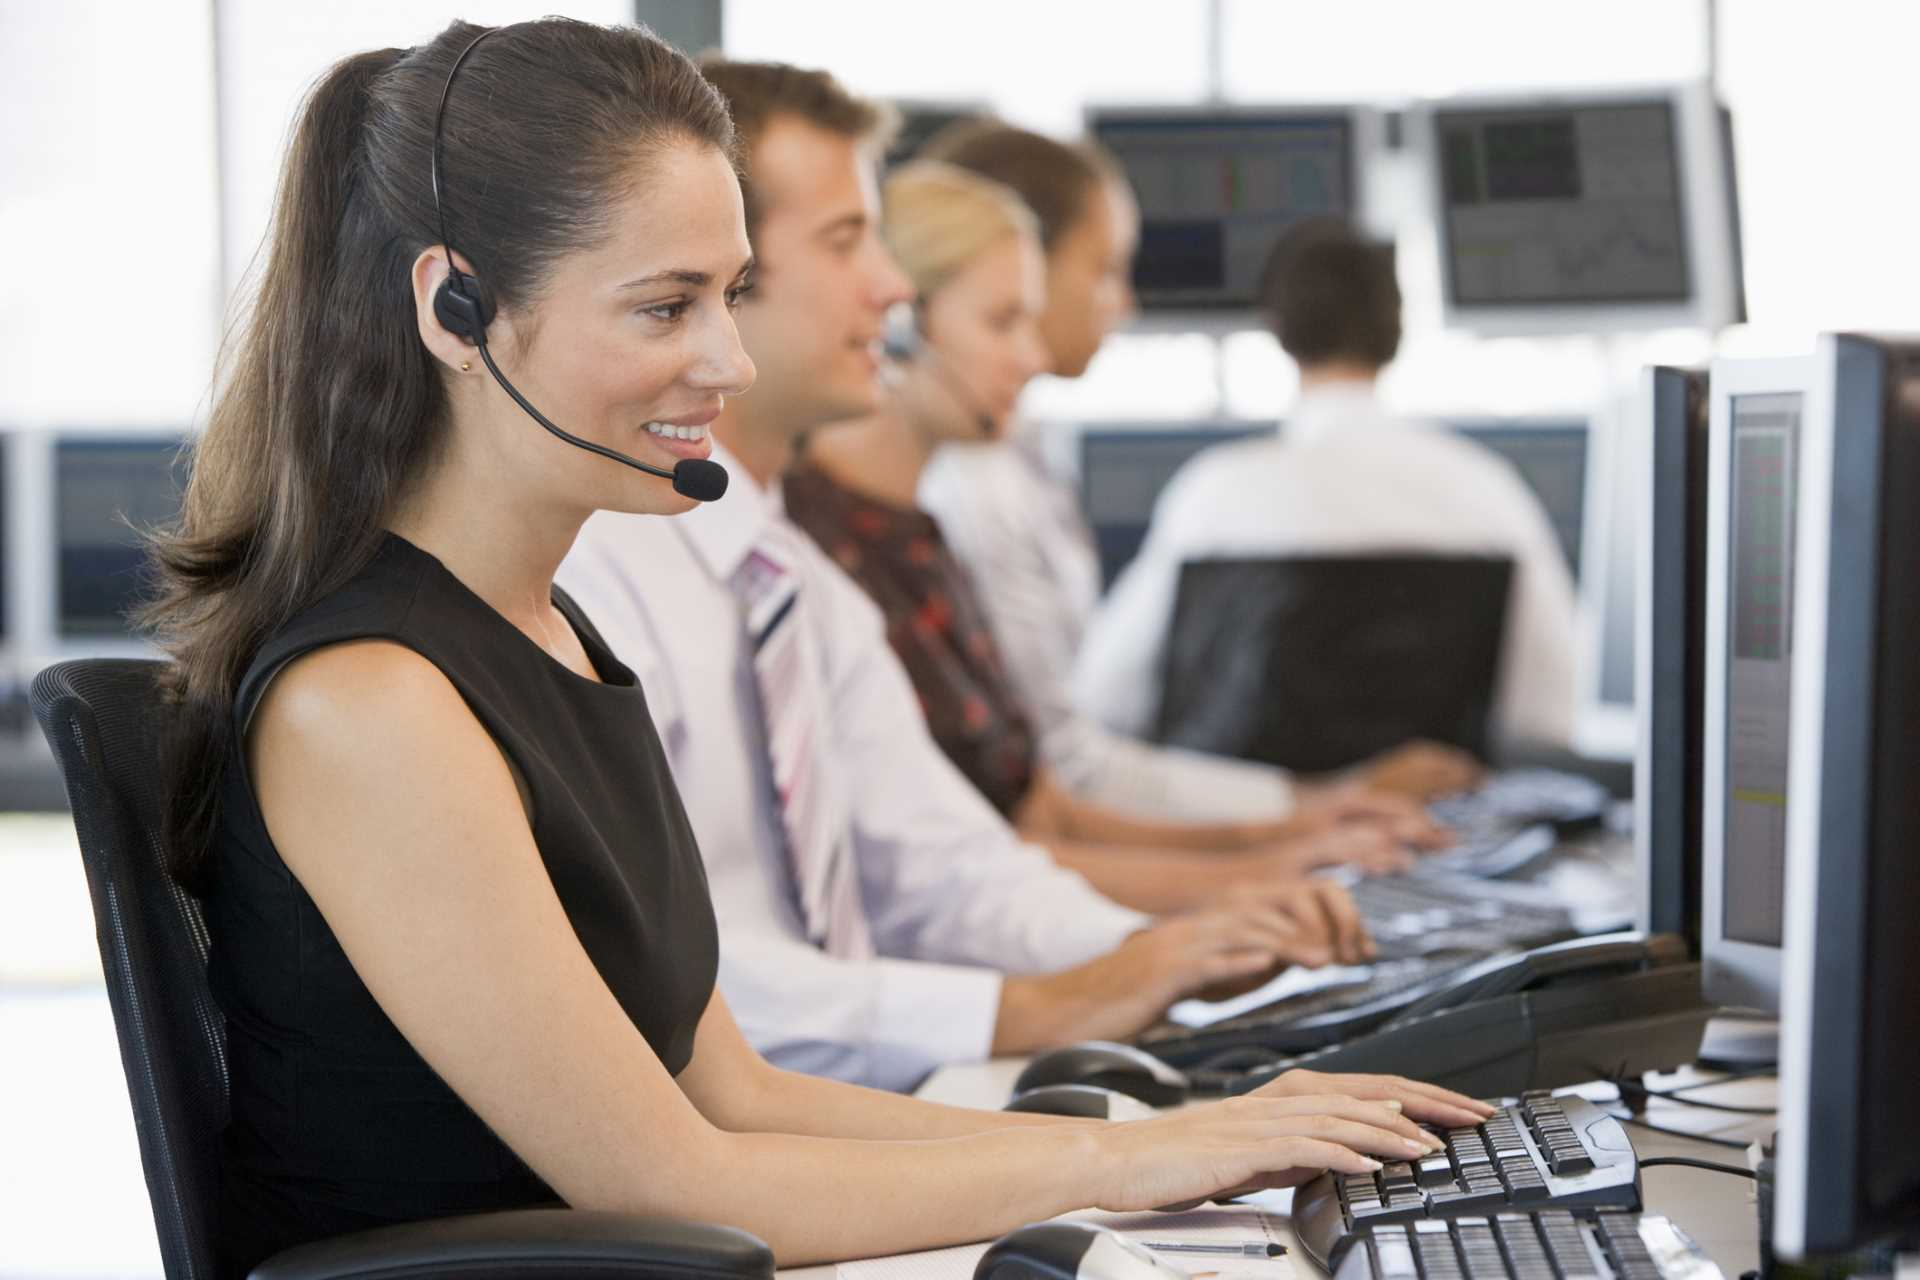 These Call Centers Are Focused On A Variety Of Patient Services Such As  Dispatching Healthcare Information, ...